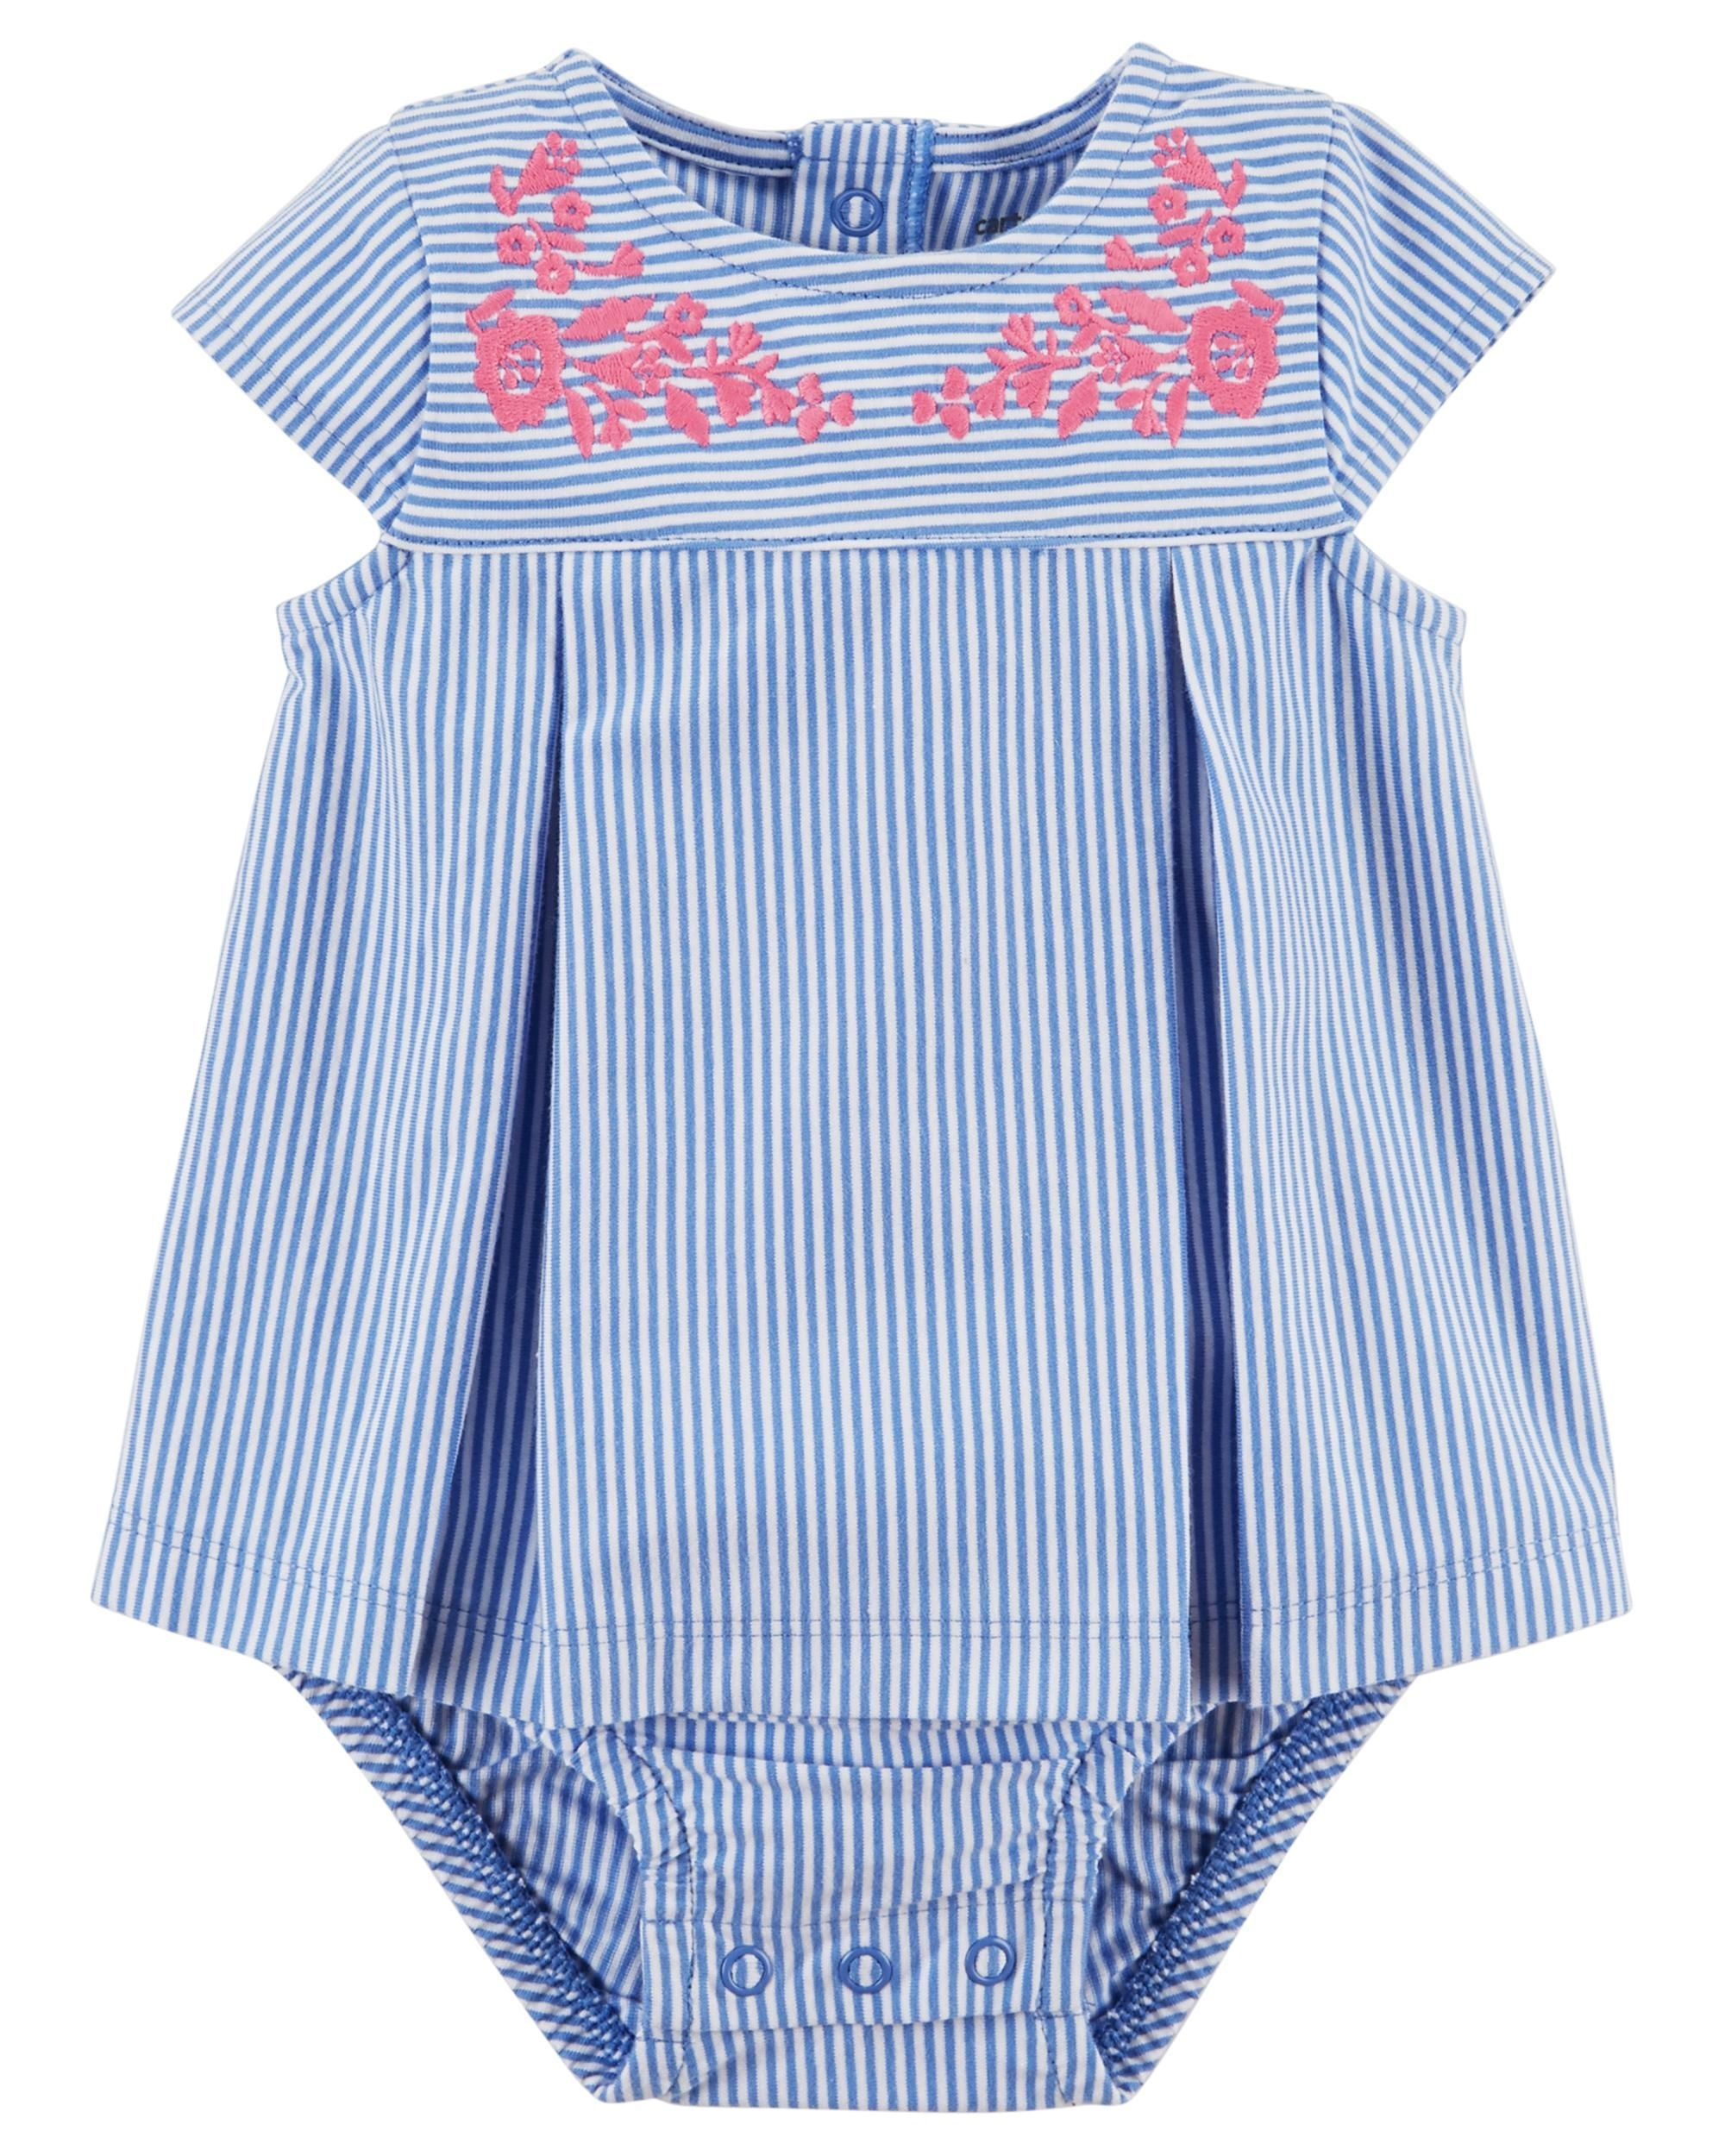 b0ce3756c47 Baby Girl Embroidered Sunsuit